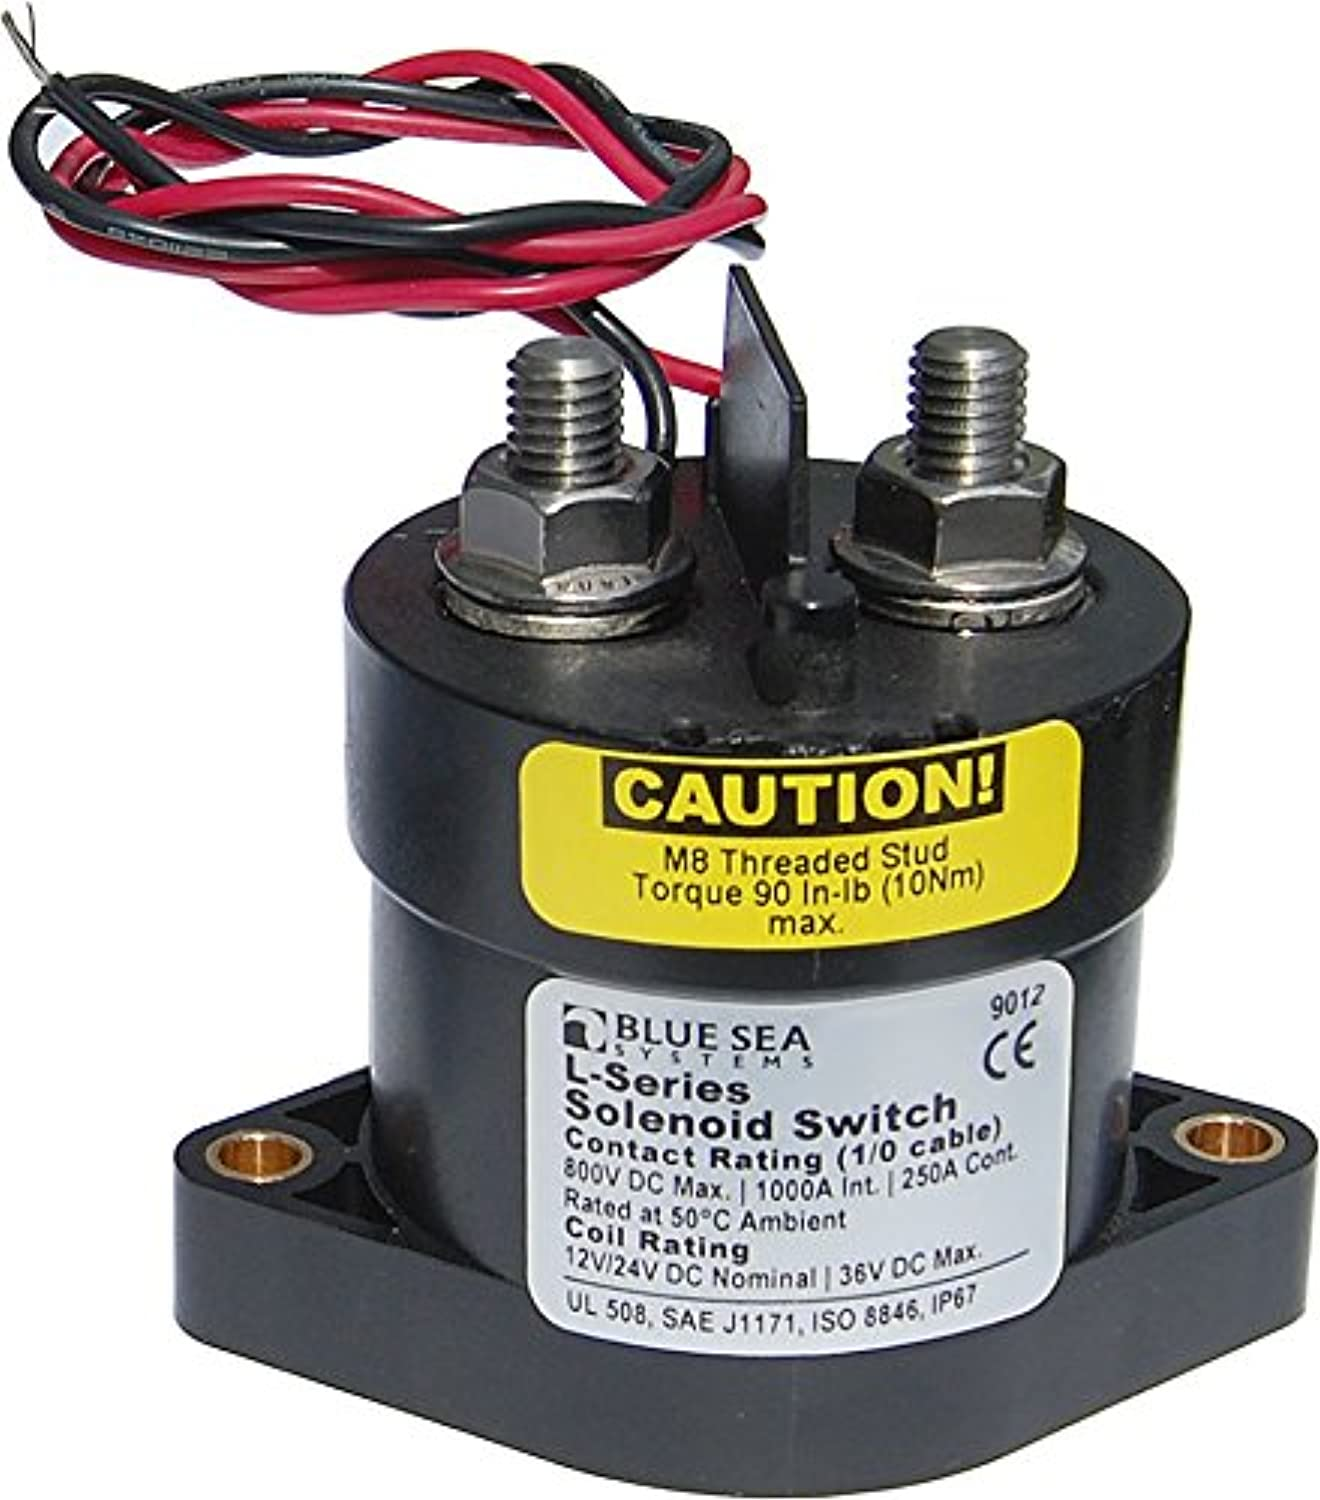 bluee Sea Systems 9012, L Solenoid12 24V DC 250A